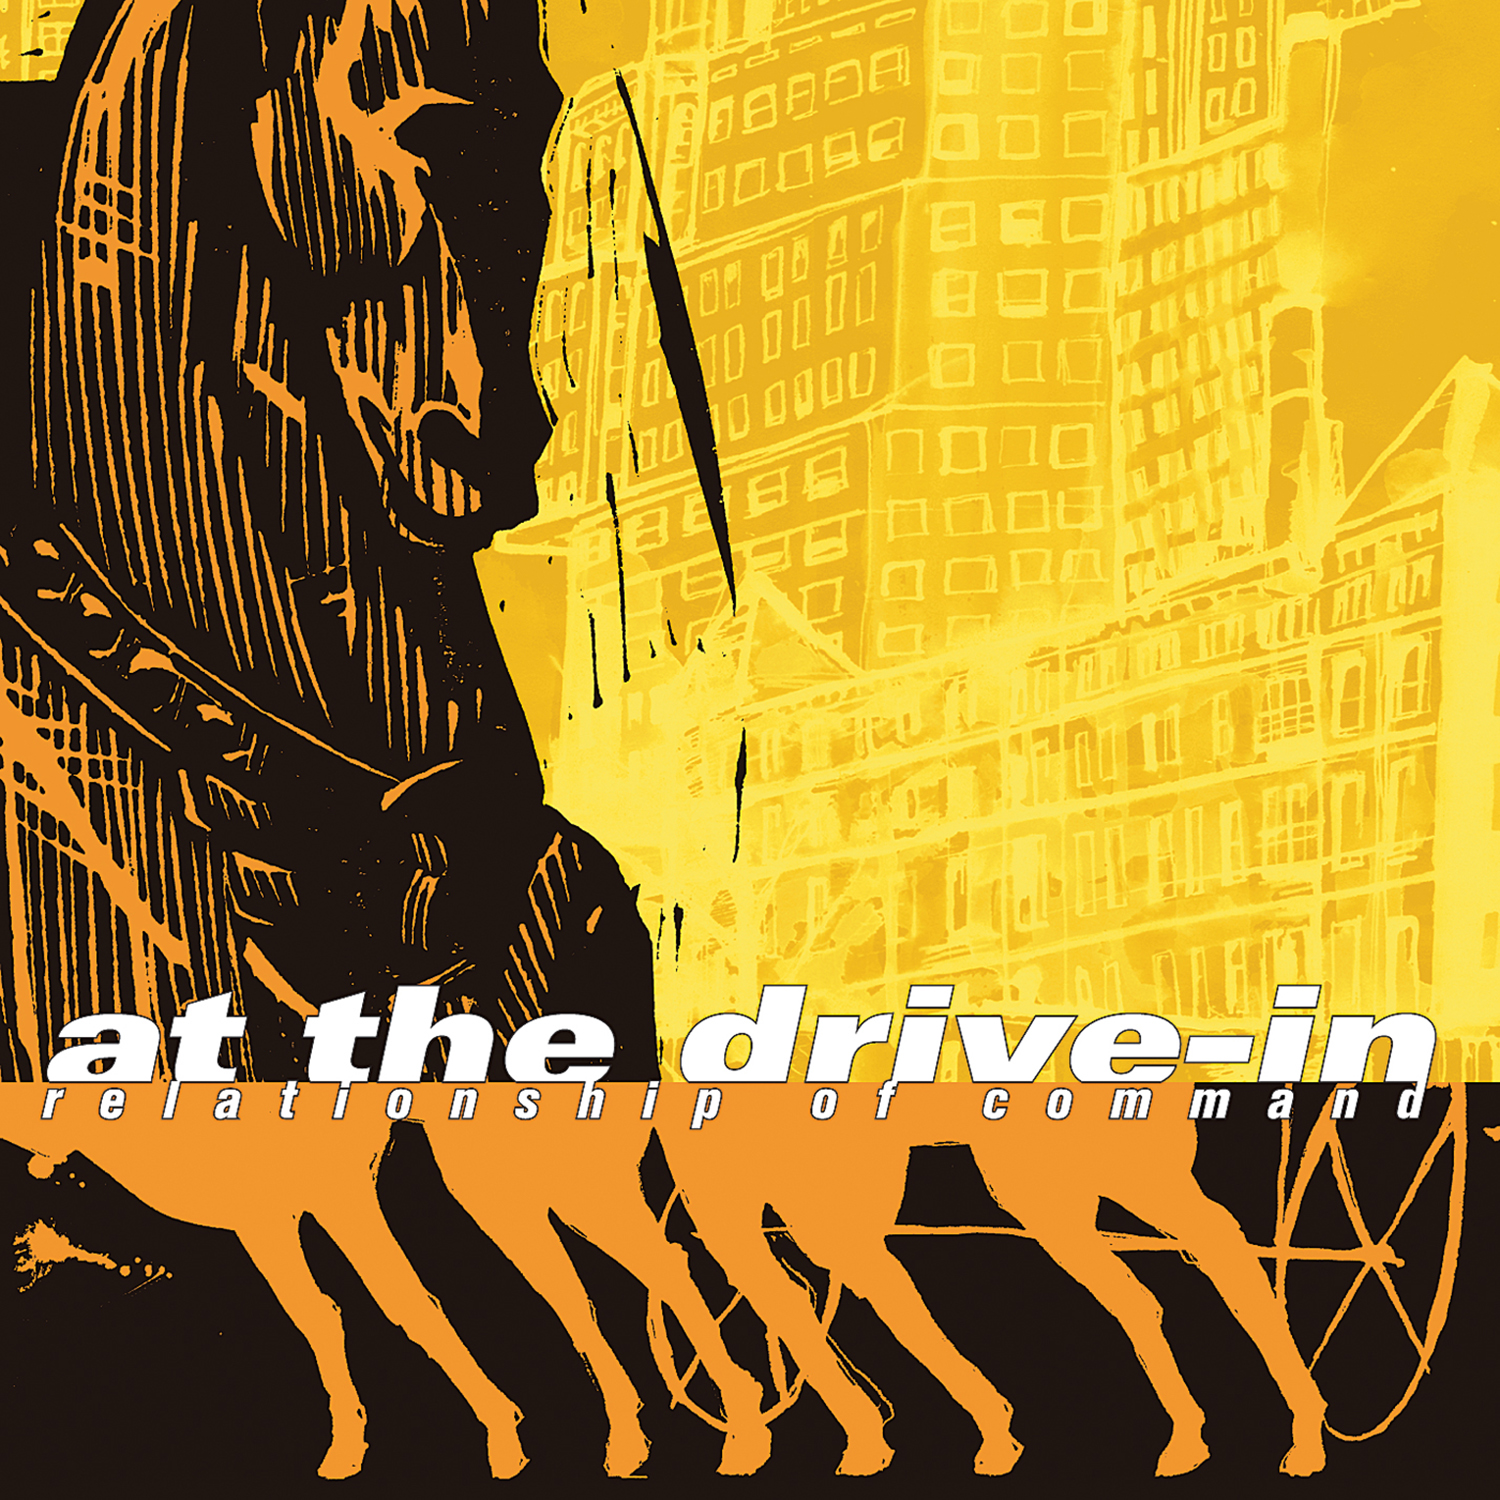 at the drive in relationship of command vinyl wallcovering